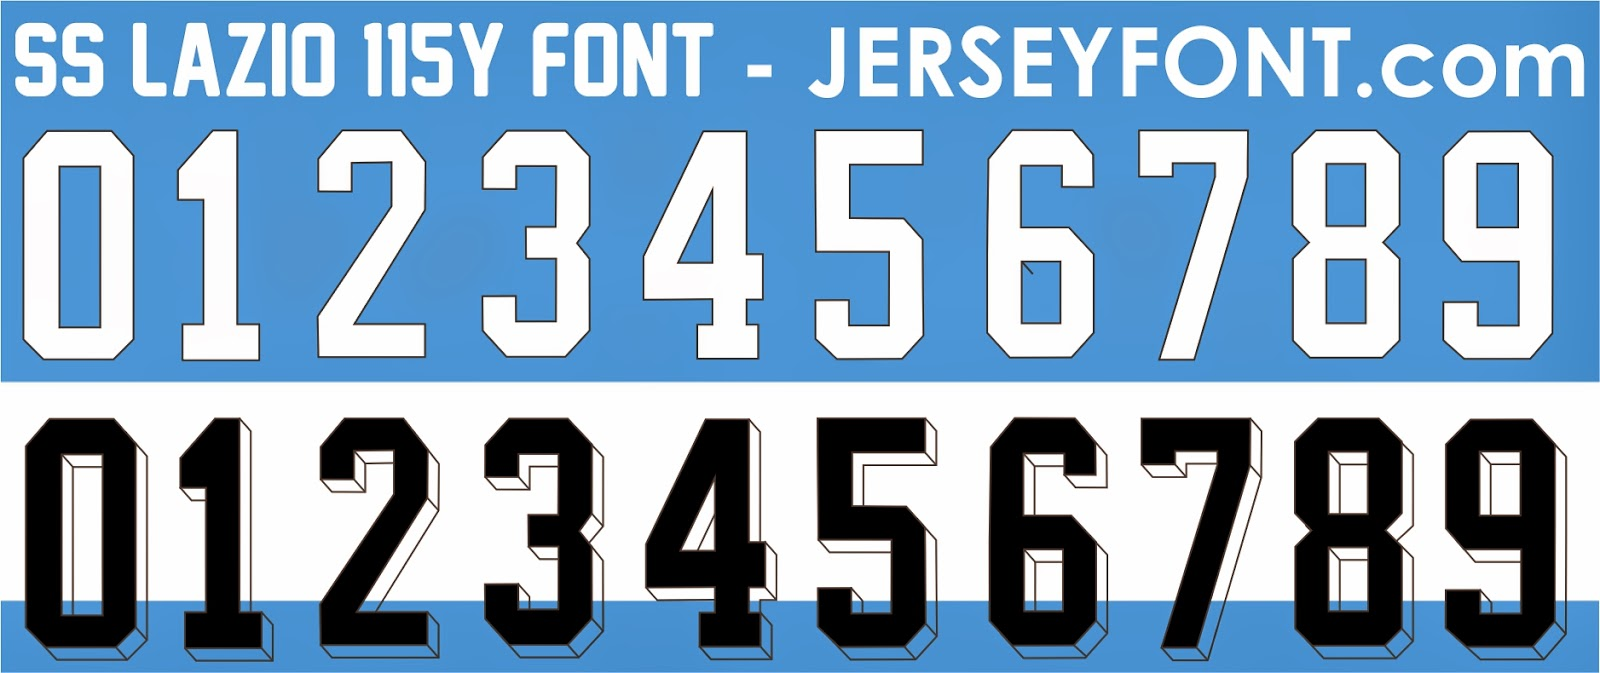 Font Number Of Football Jersey